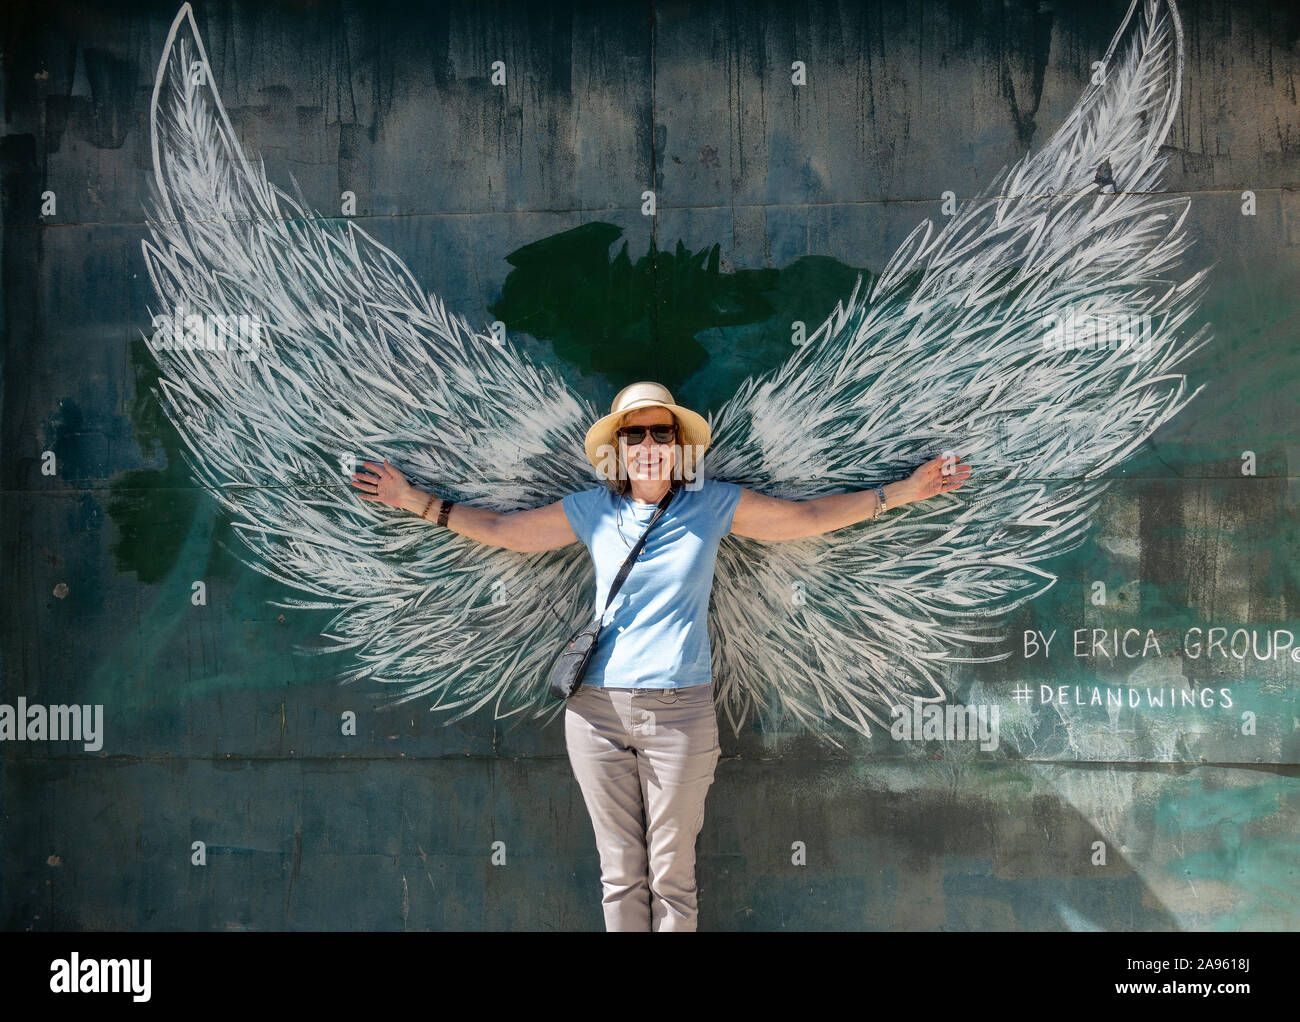 Mature Retired Woman Posing In Front Of The DeLand Wings Mural Painted By The Erica Group Stock Photo